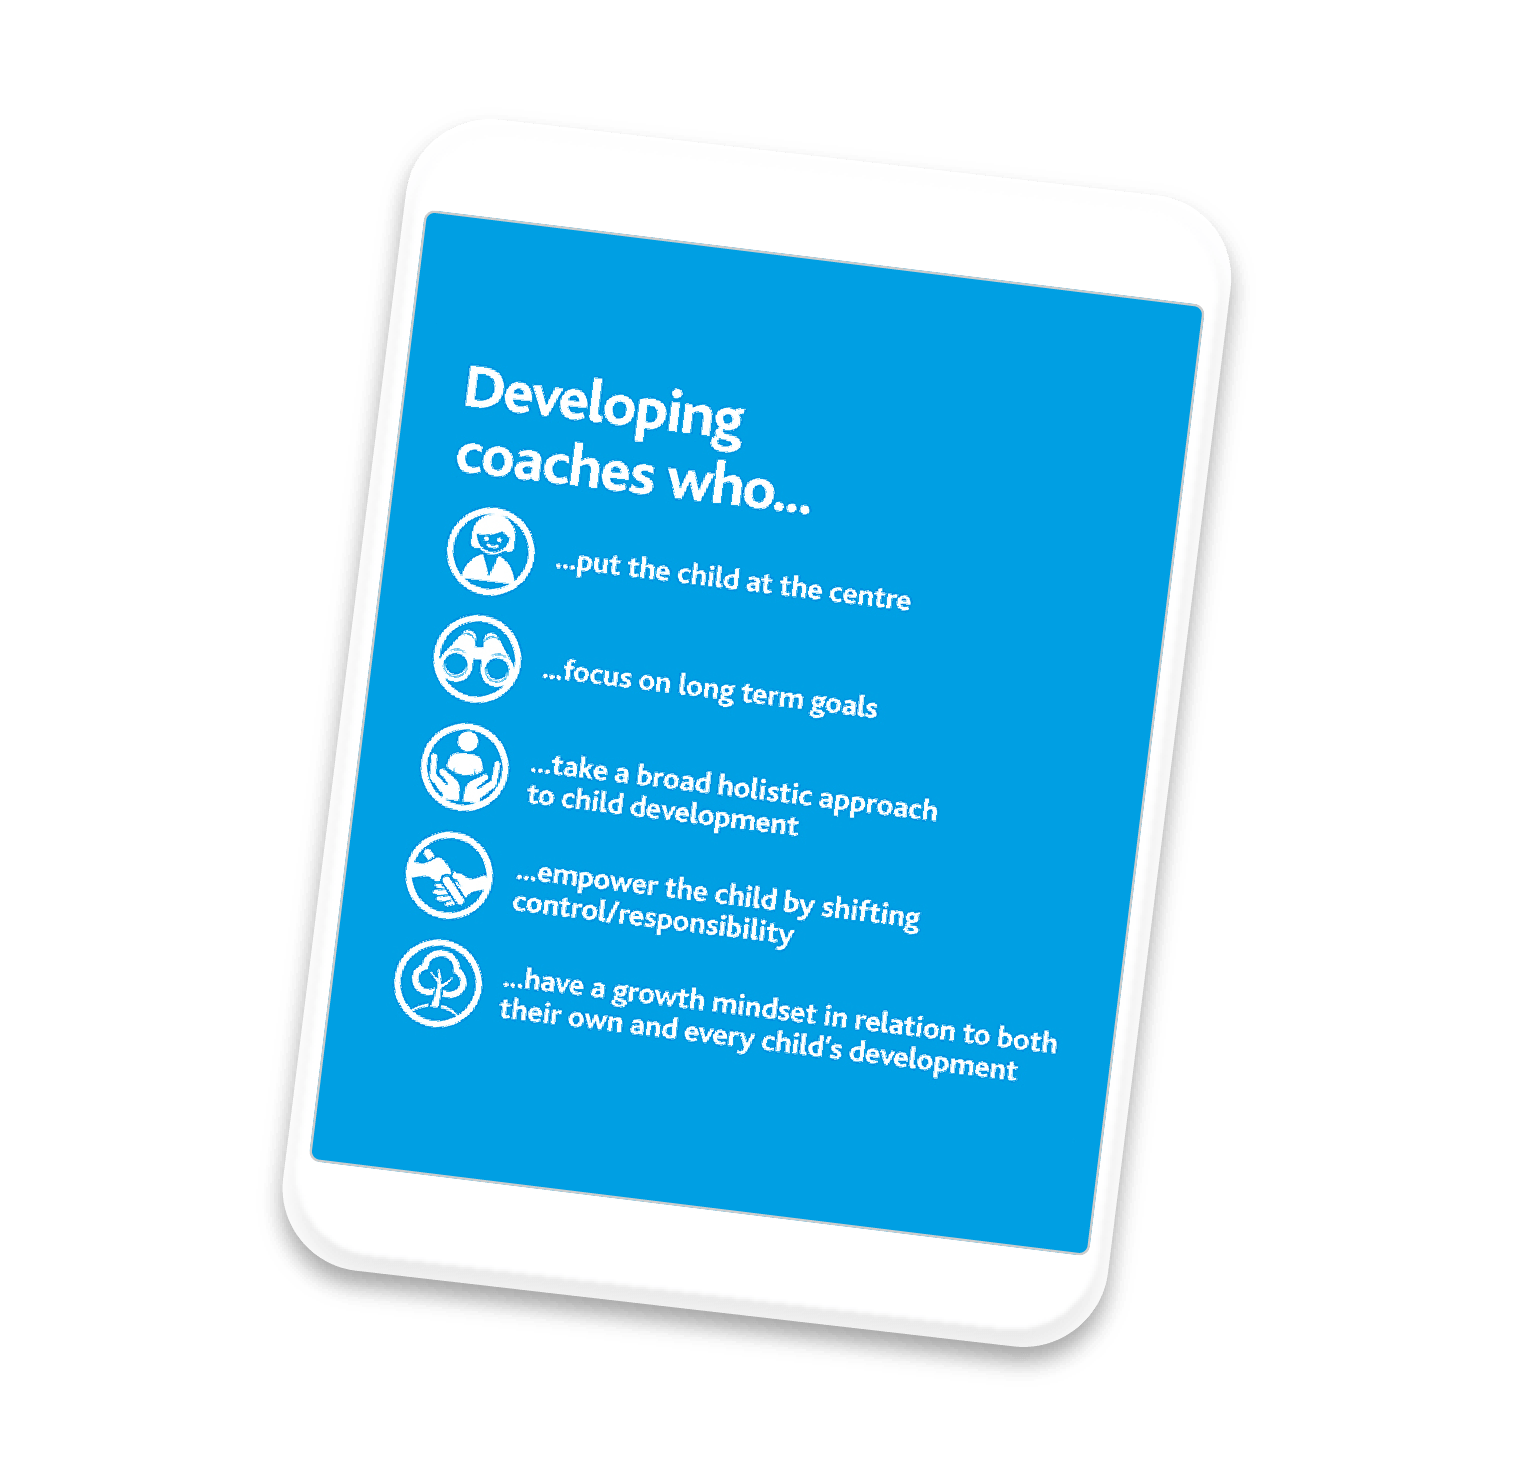 Transforming coaching habits to develop children's essential learning behaviours